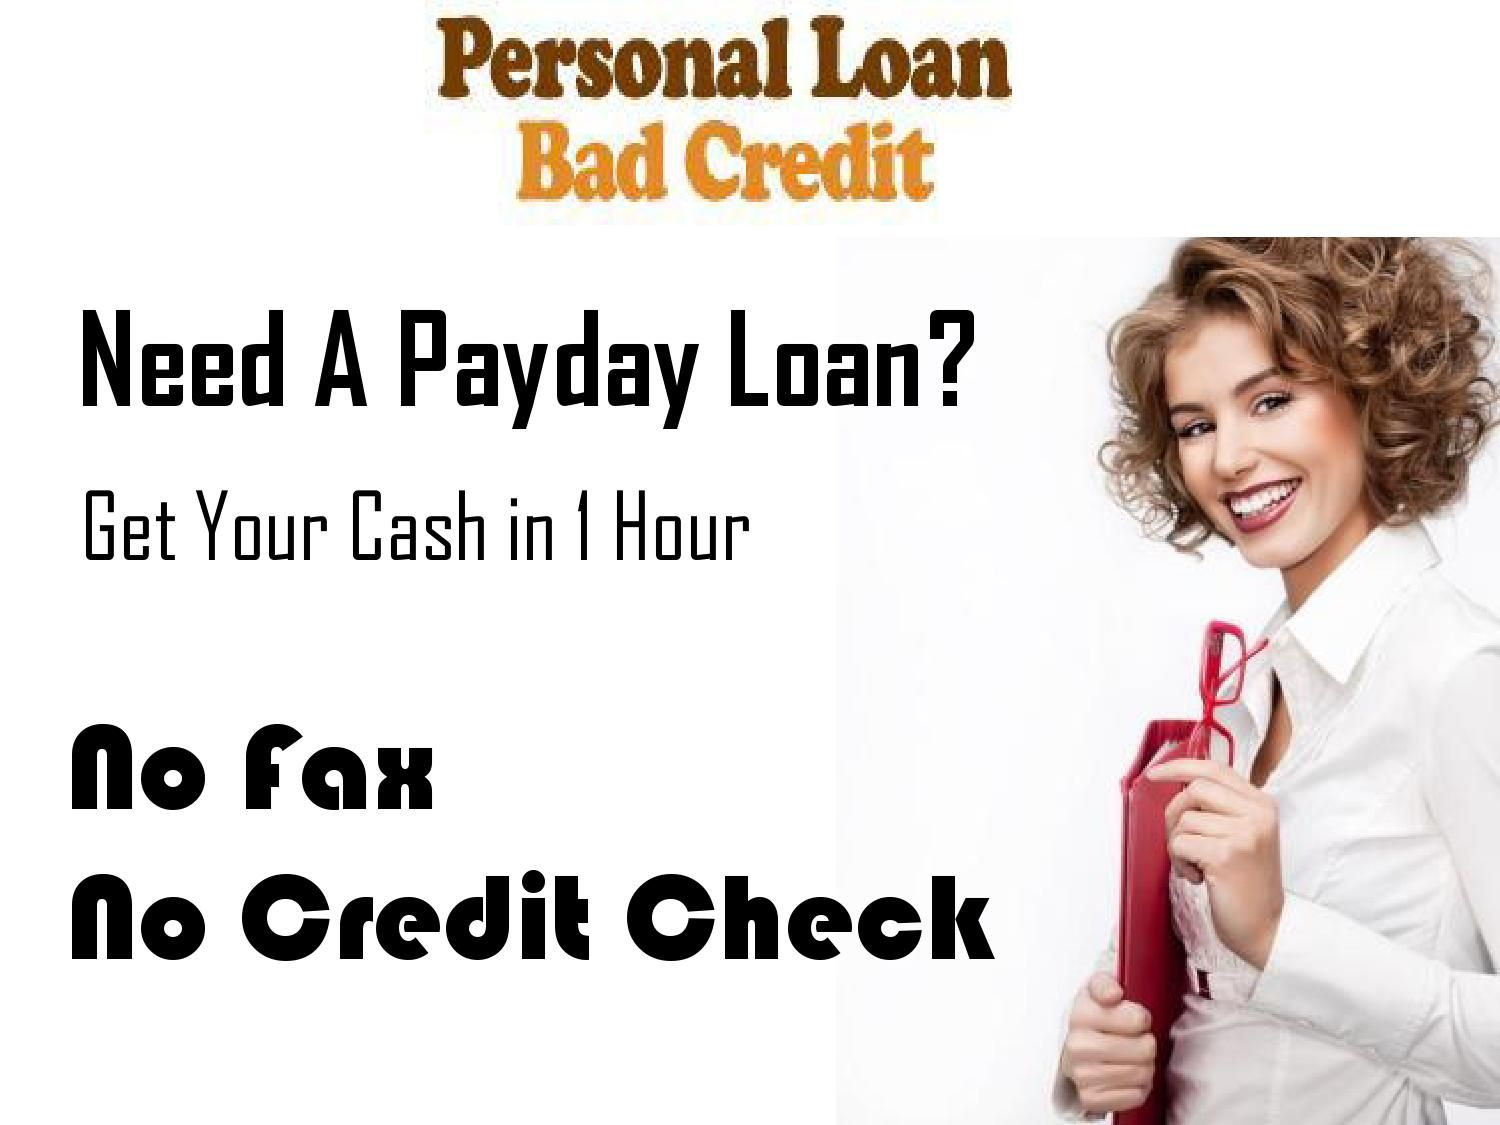 No Direct Deposit Payday Loans Online Payday Loans Payday Loans Online Payday